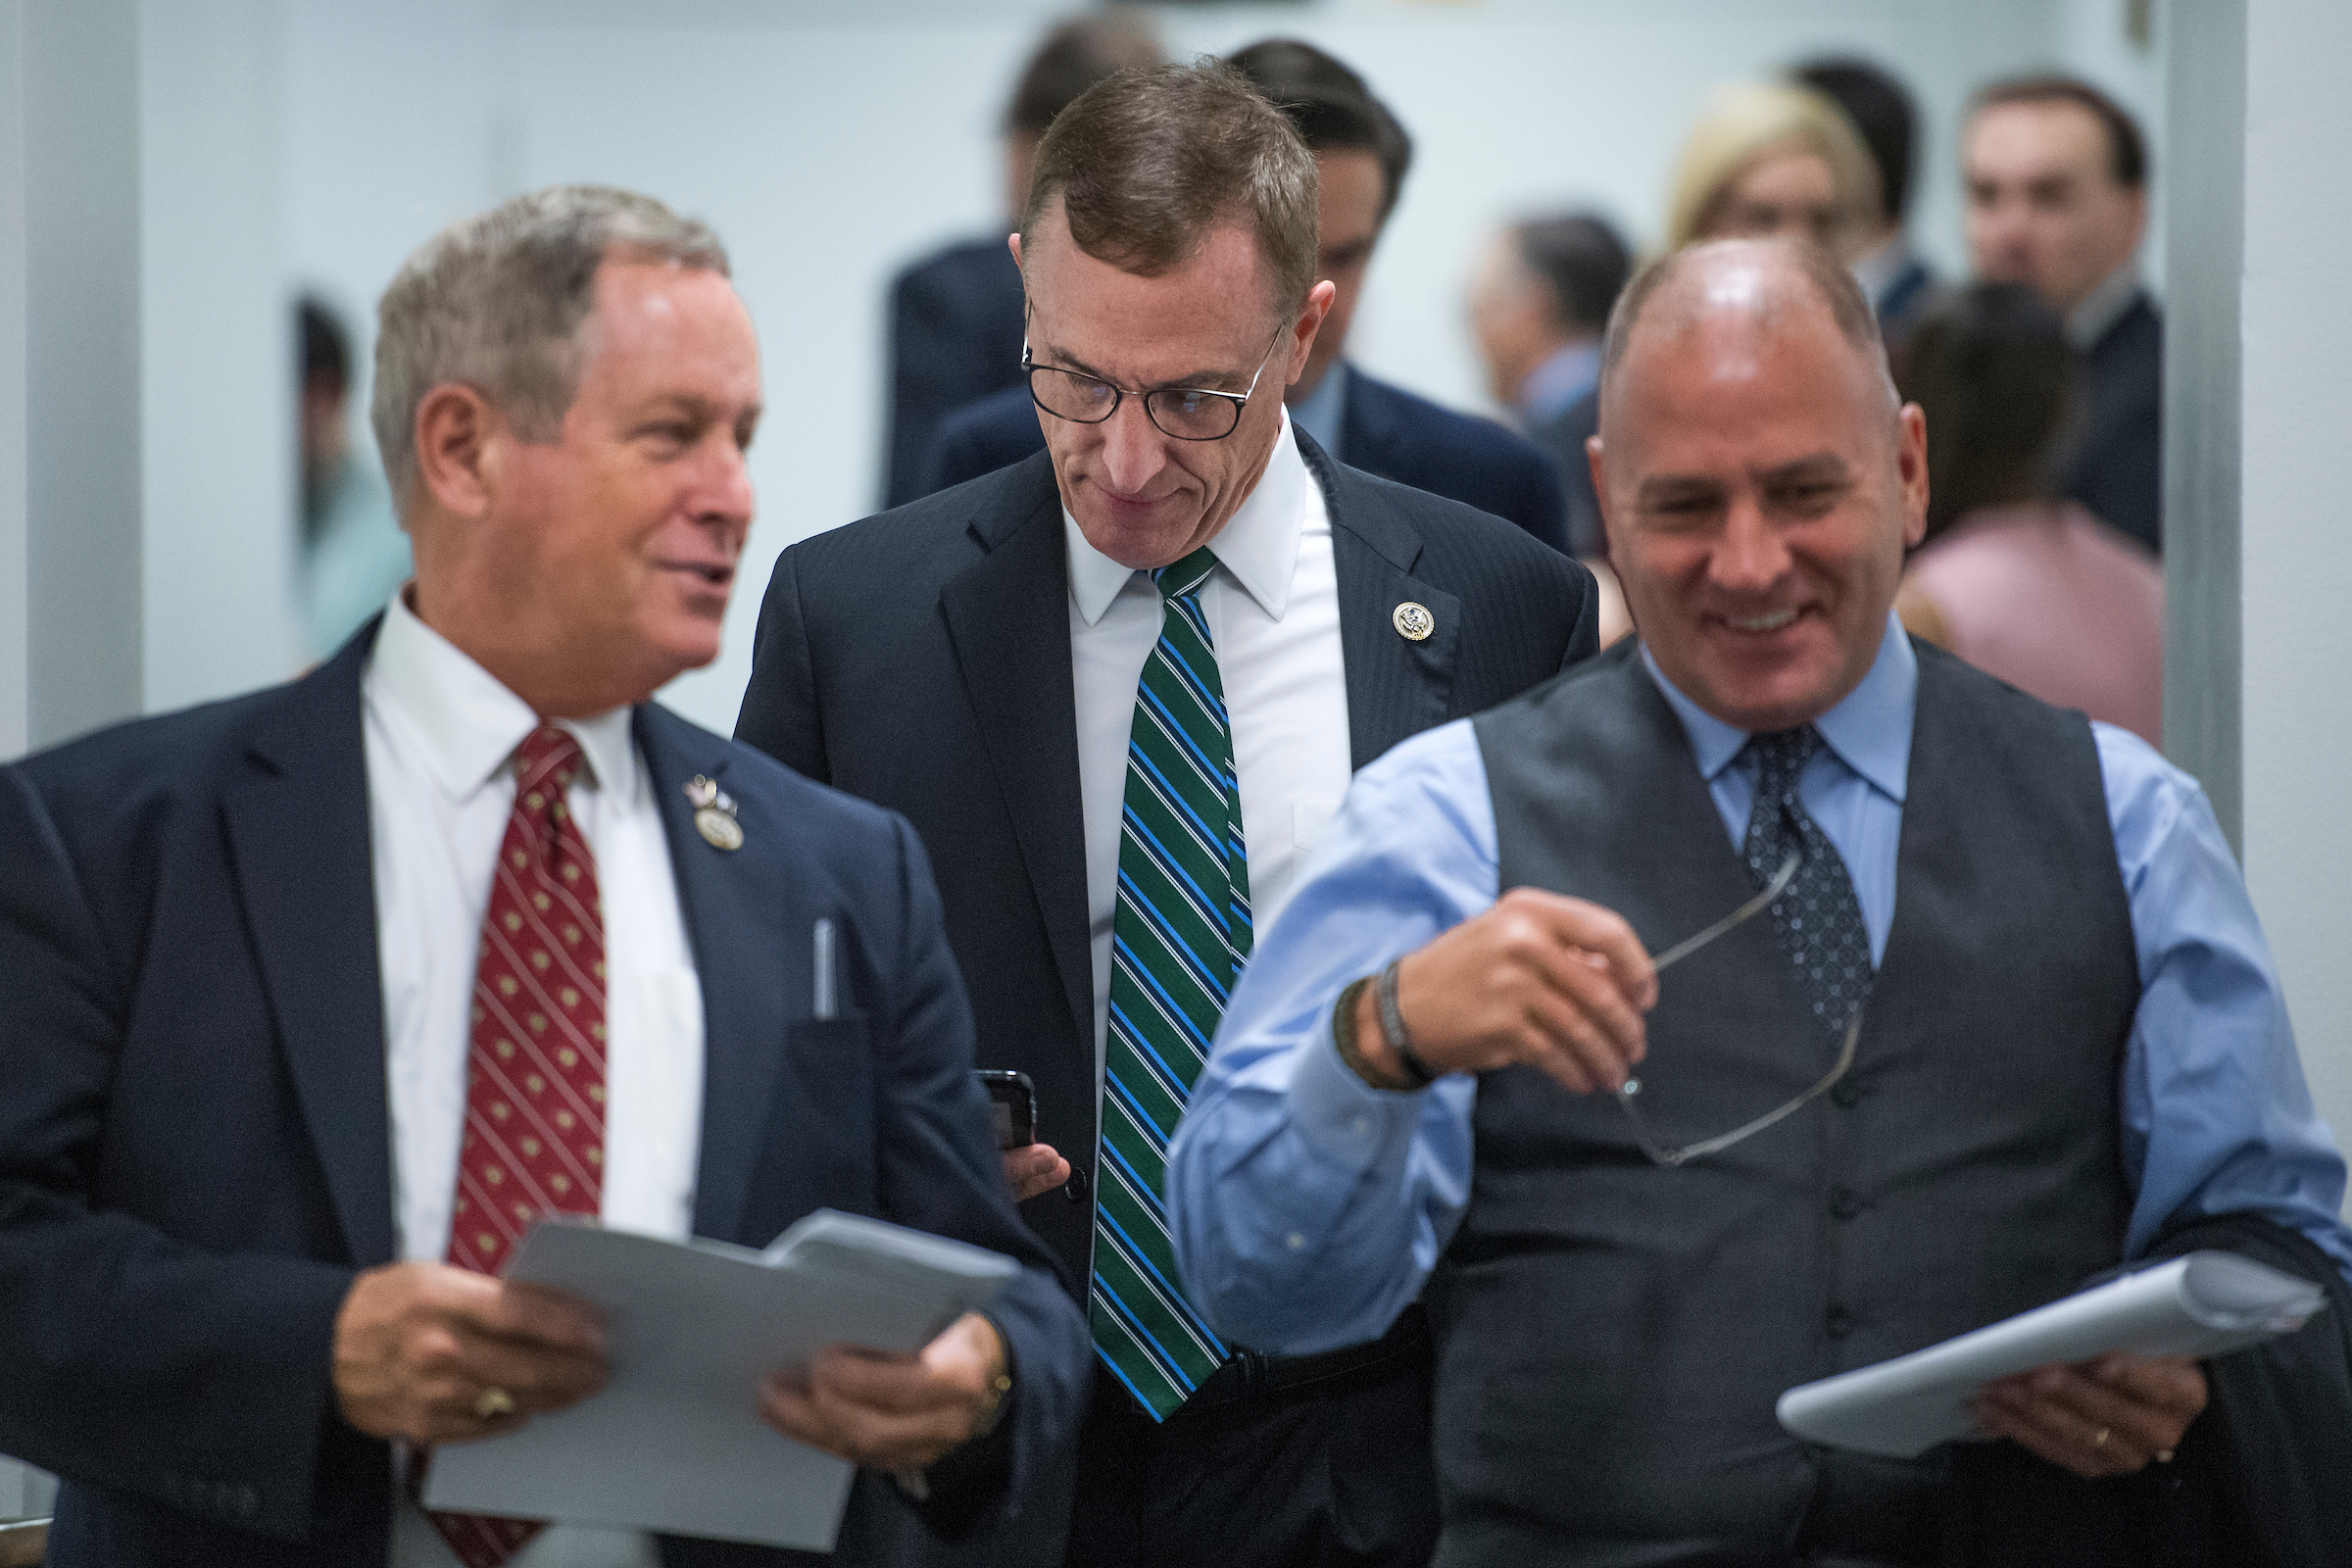 UNITED STATES - OCTOBER 11: From left, Reps. Joe Wilson, R-S.C., Tim Murphy, R-Pa., and Clay Higgins, R-La., leave a meeting of the House Republican Conference in the Capitol on October 11, 2017. (Photo By Tom Williams/CQ Roll Call)